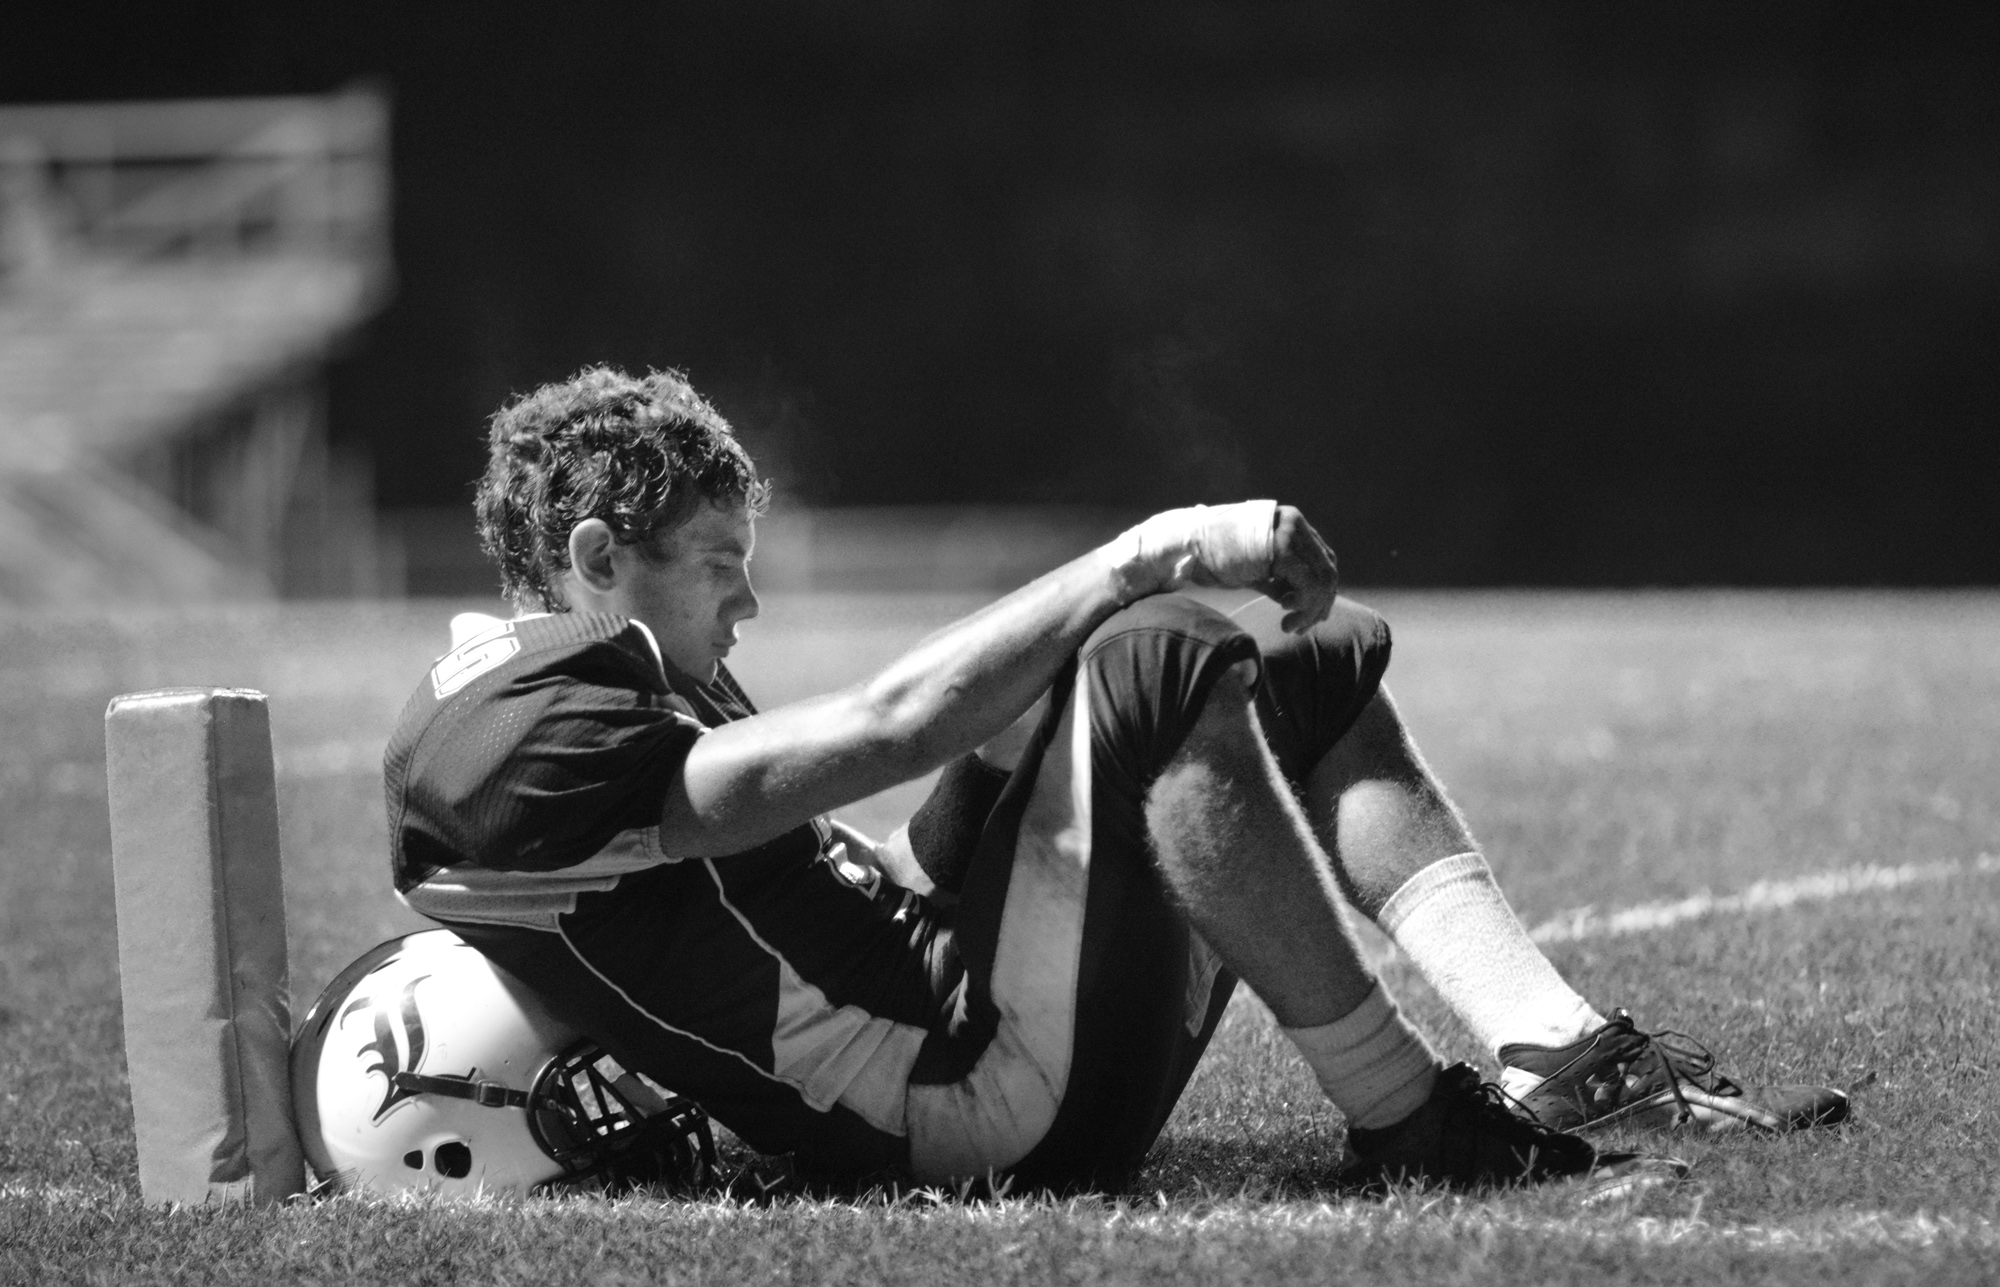 One player pauses before leaving the field.